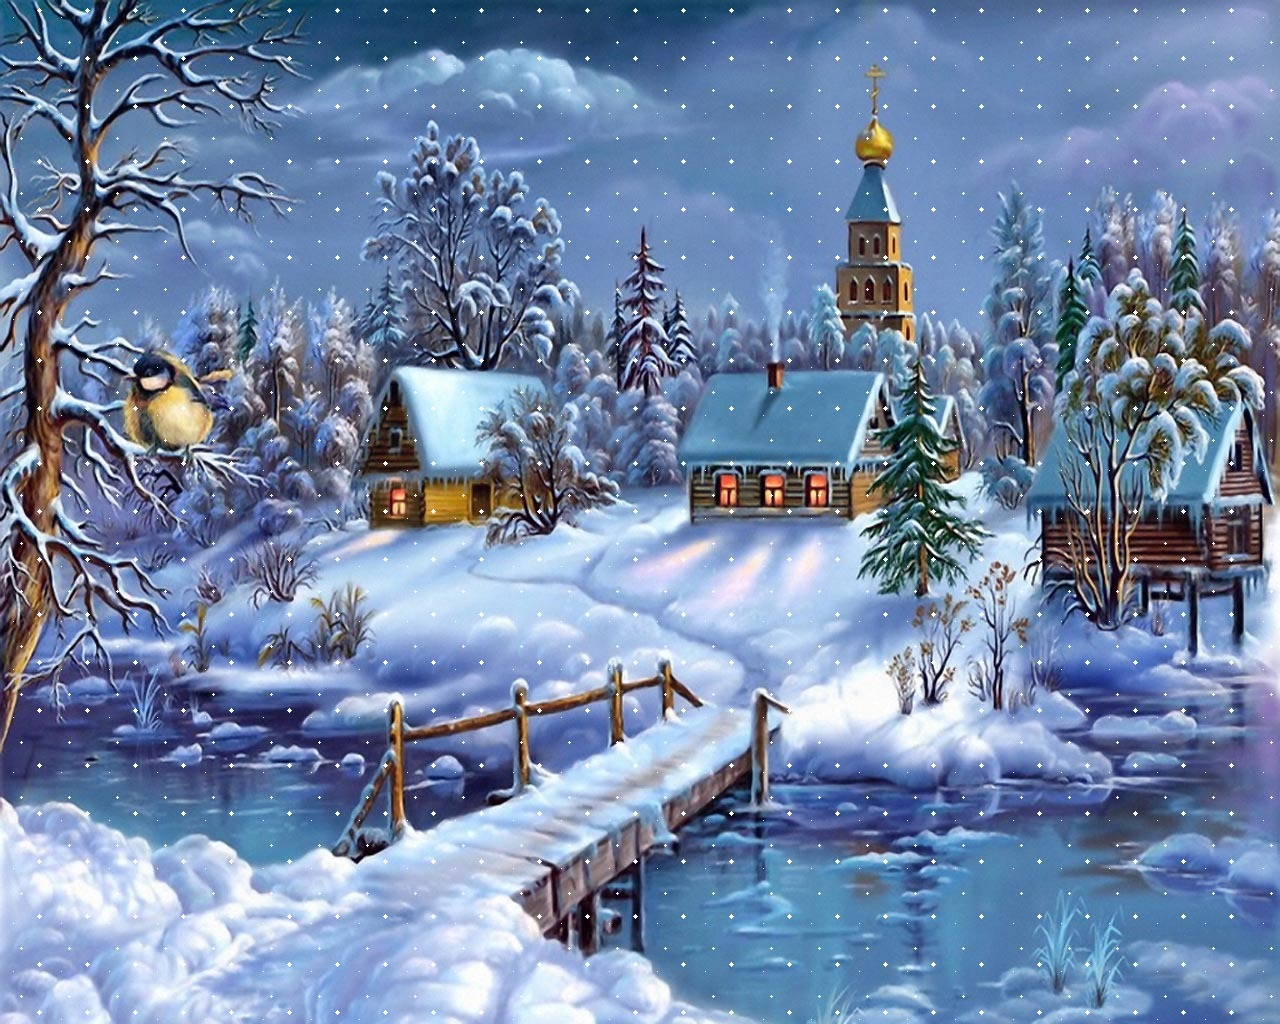 Winter Wallpaper Animated Wallpapers Background Wallpapers Amazing Wallpapers D Wallpaper